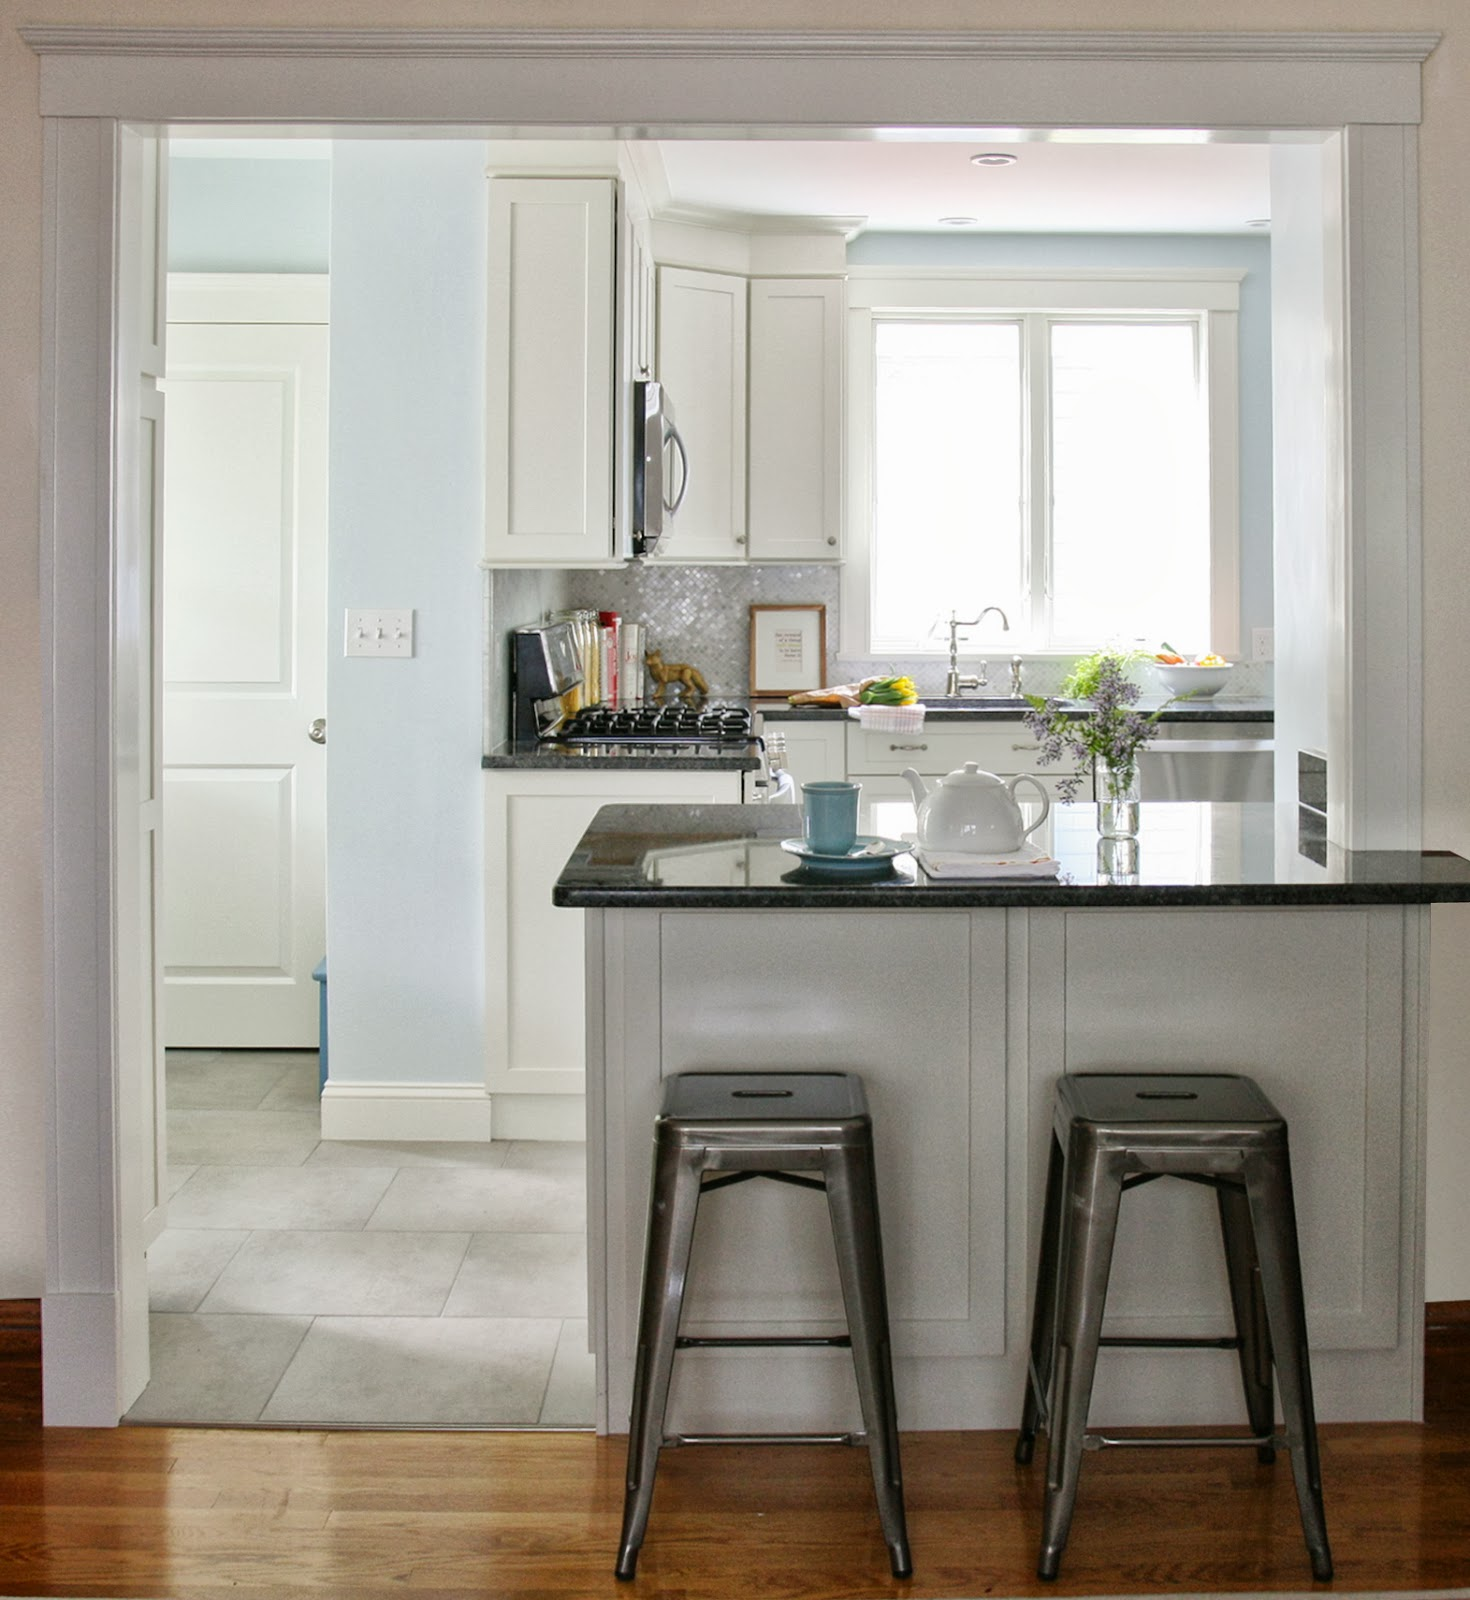 Sabbe Interior Design The Blog Arlington Kitchen Renovation Before And After